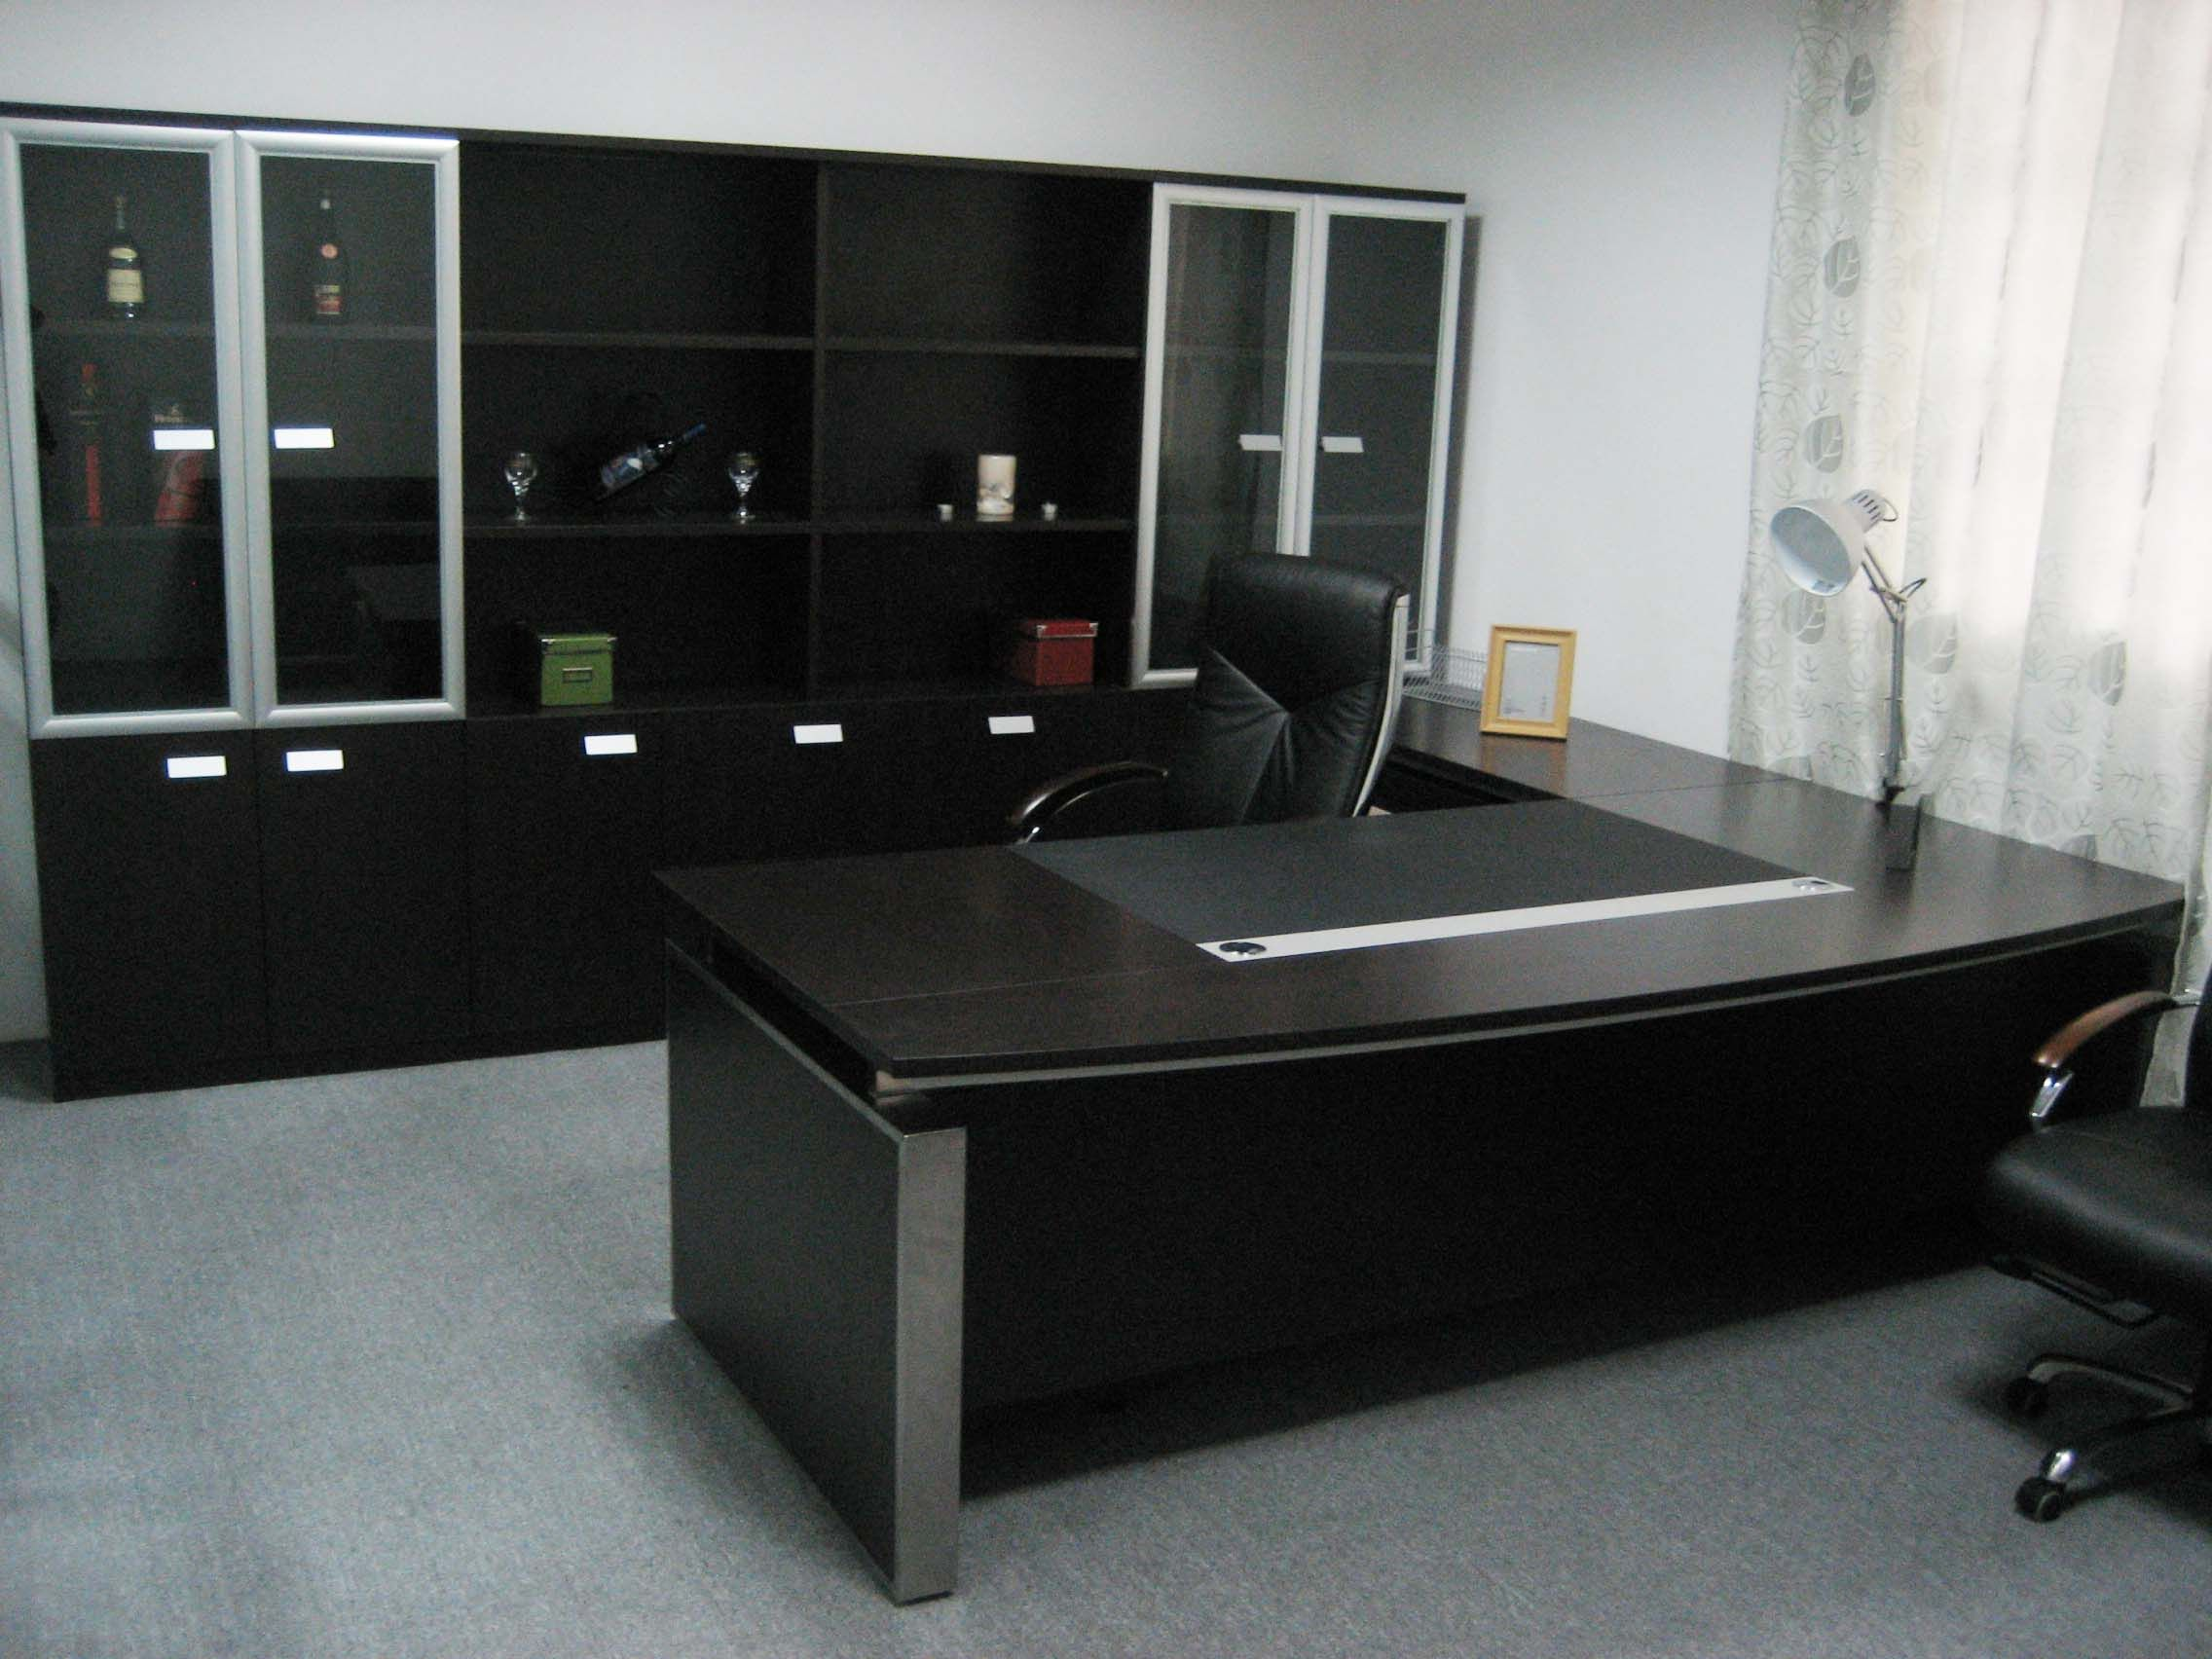 Remarkable Dark Modern Table And Cabinets In Executive Office Desk Furniture Design Ideas